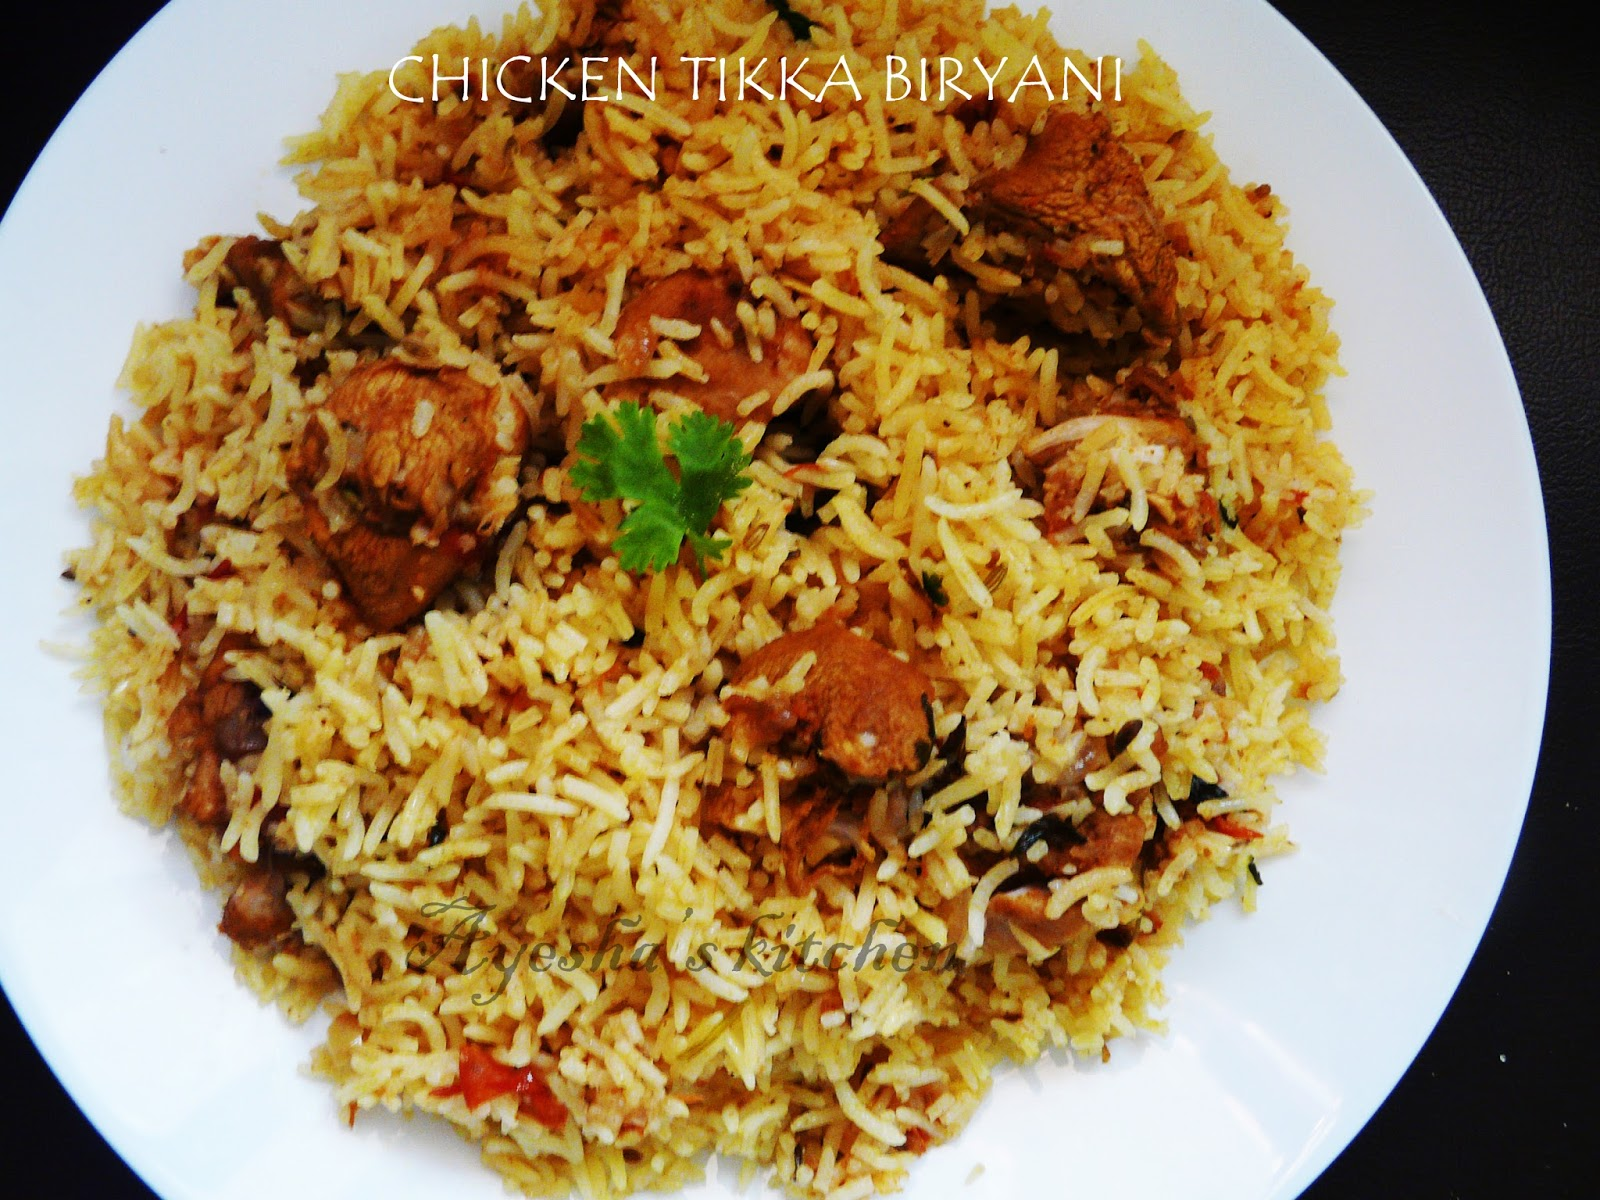 Biryani Recipes How To Make Chicken Tikka Biryani Without Grill